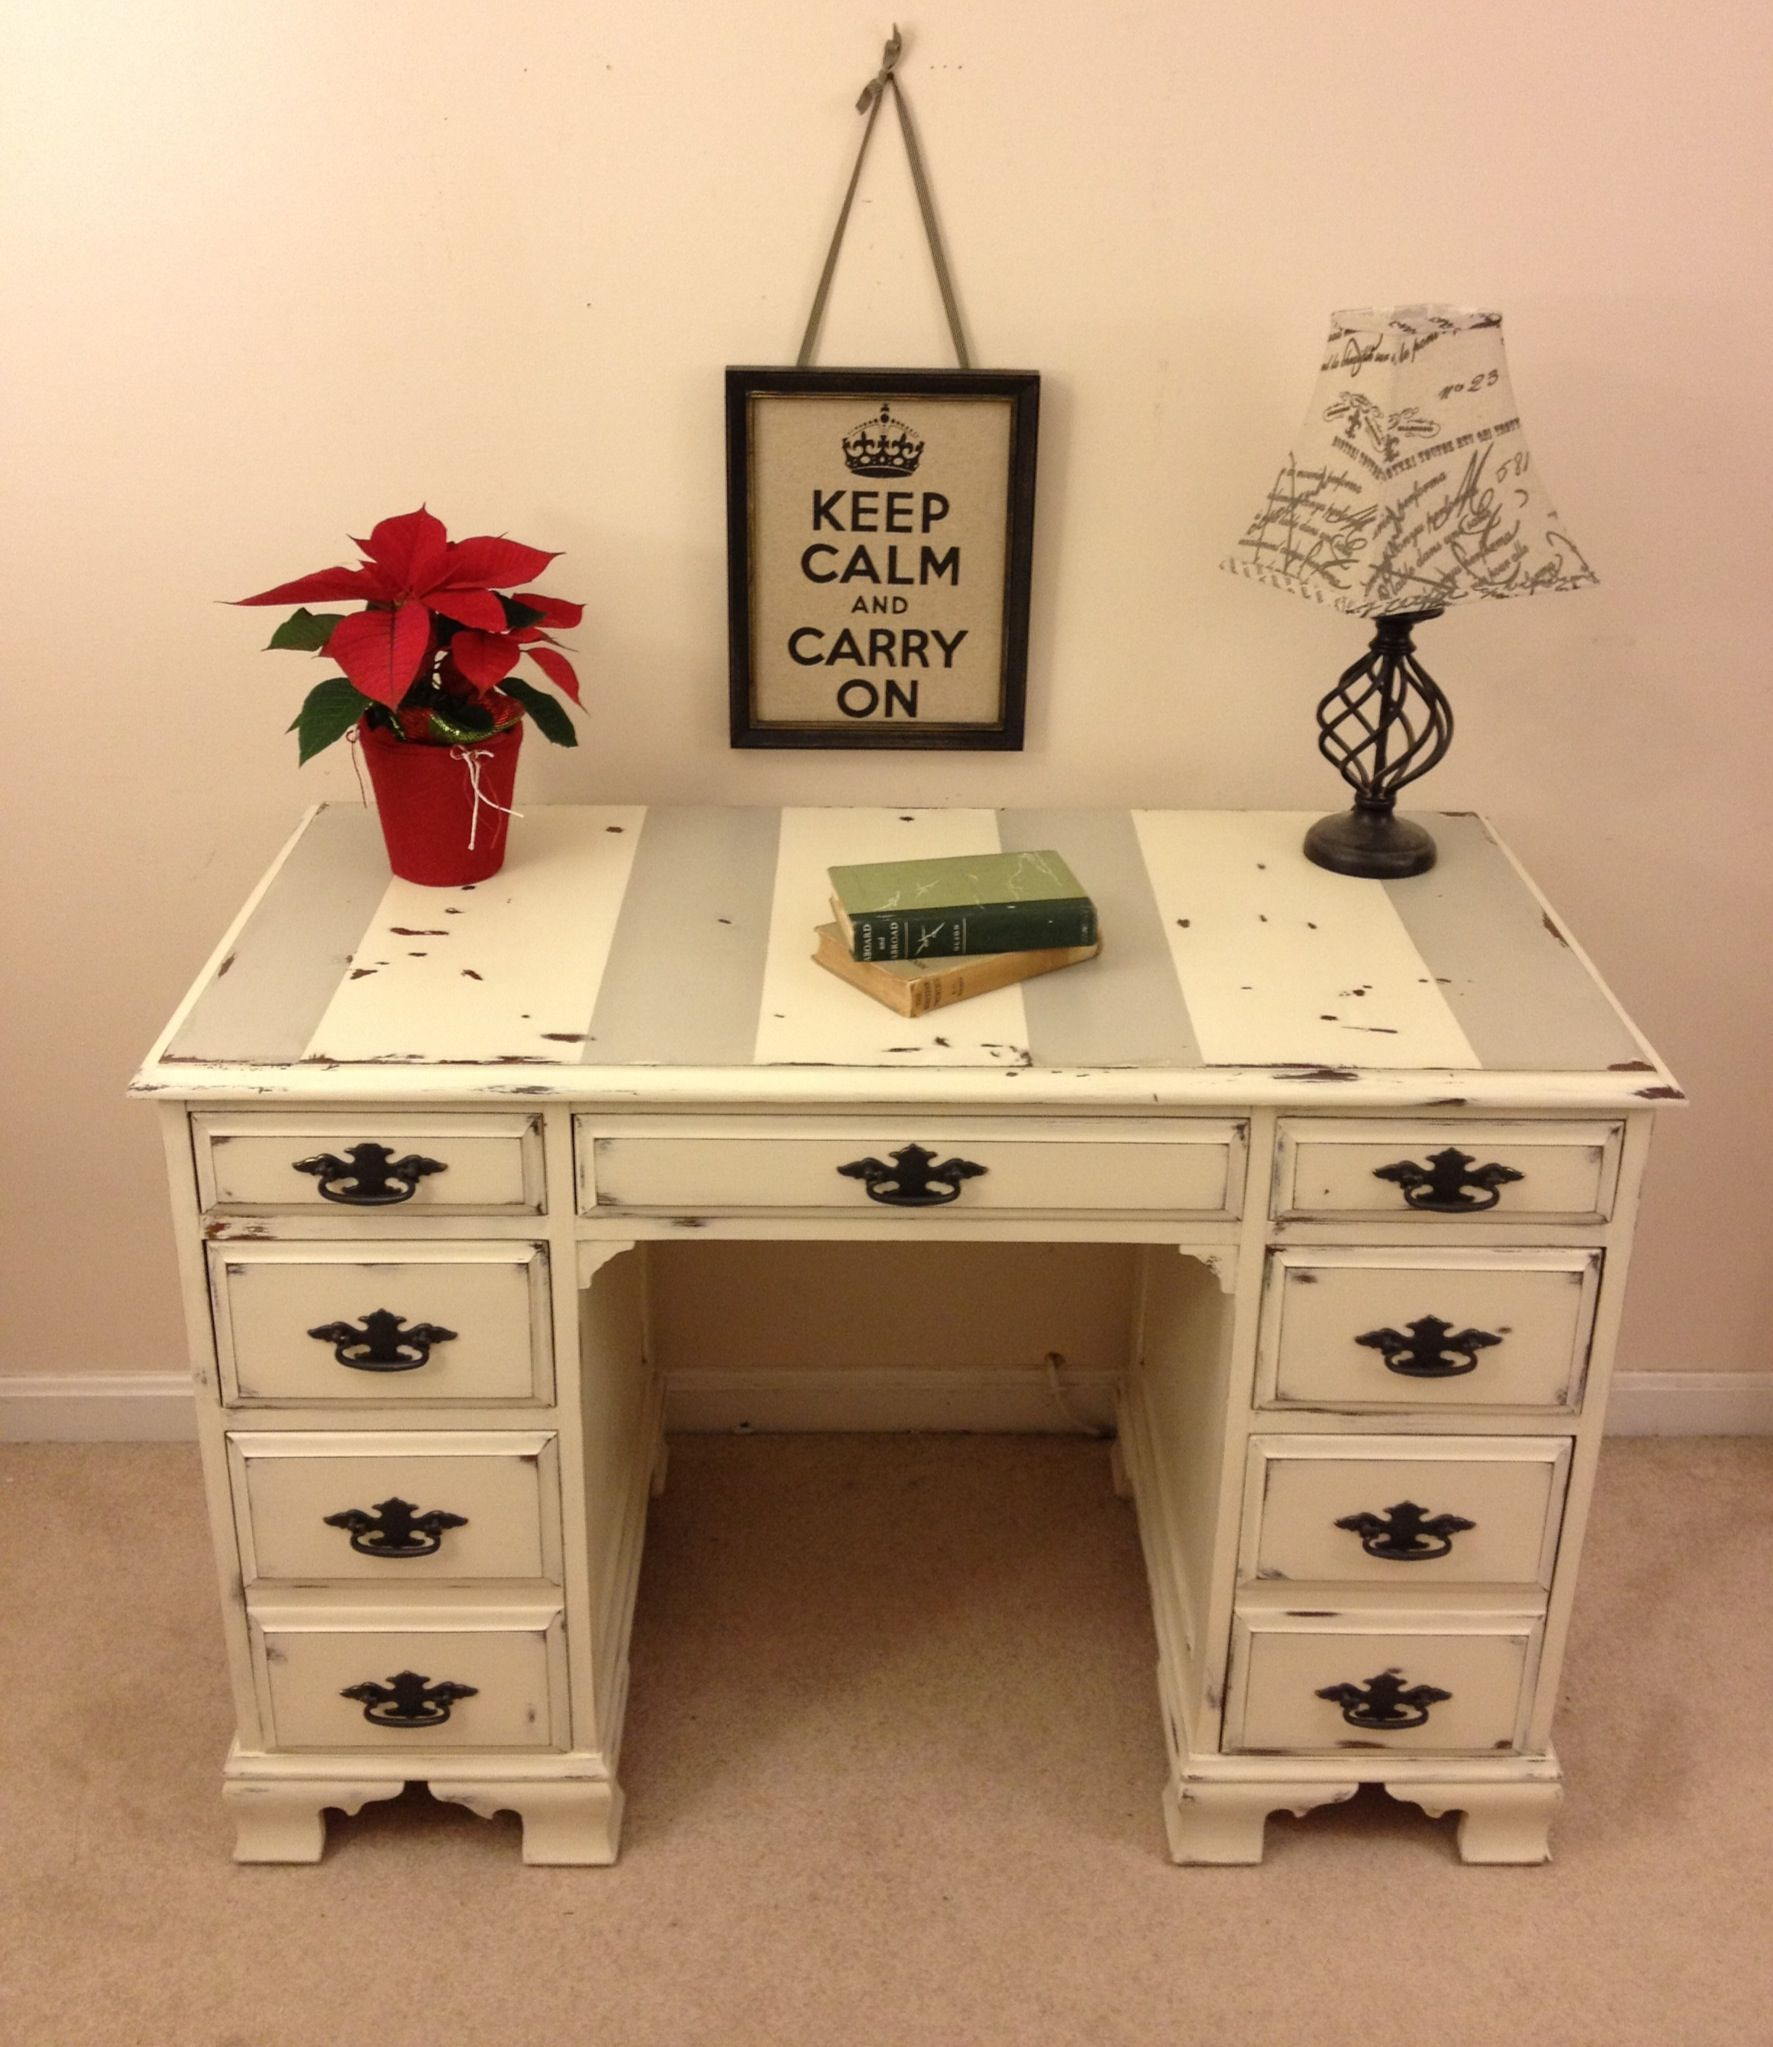 Shabby Chic Annie Sloan Chalk Paint Desk With Chippy Paint By Furniture Alchemy Distressed Desk Painte Shabby Chic Desk Shabby Chic Dresser Rustic White Desk